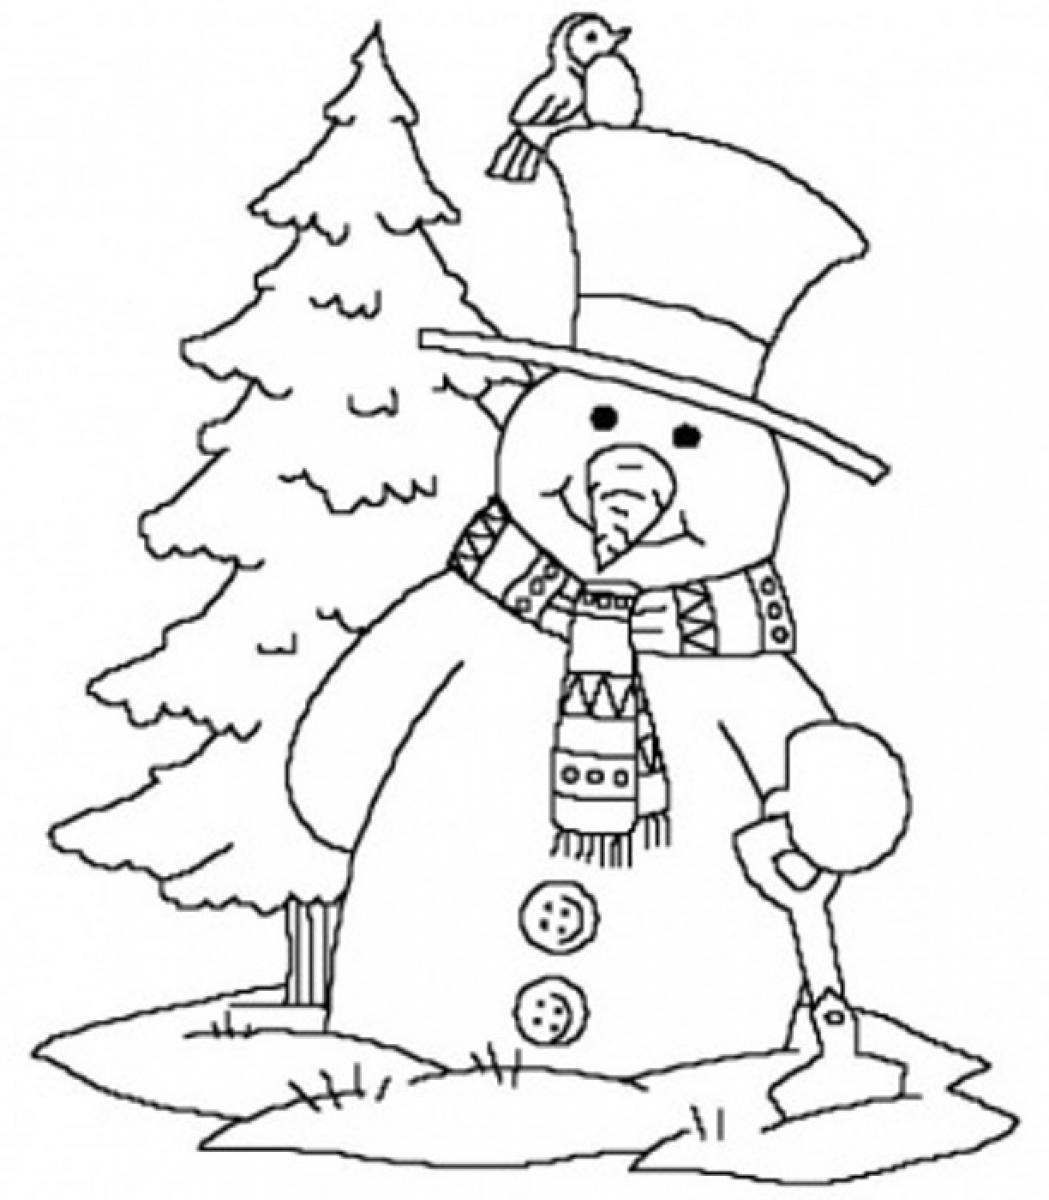 5 Images of Snowflake Printable Winter Coloring Pages